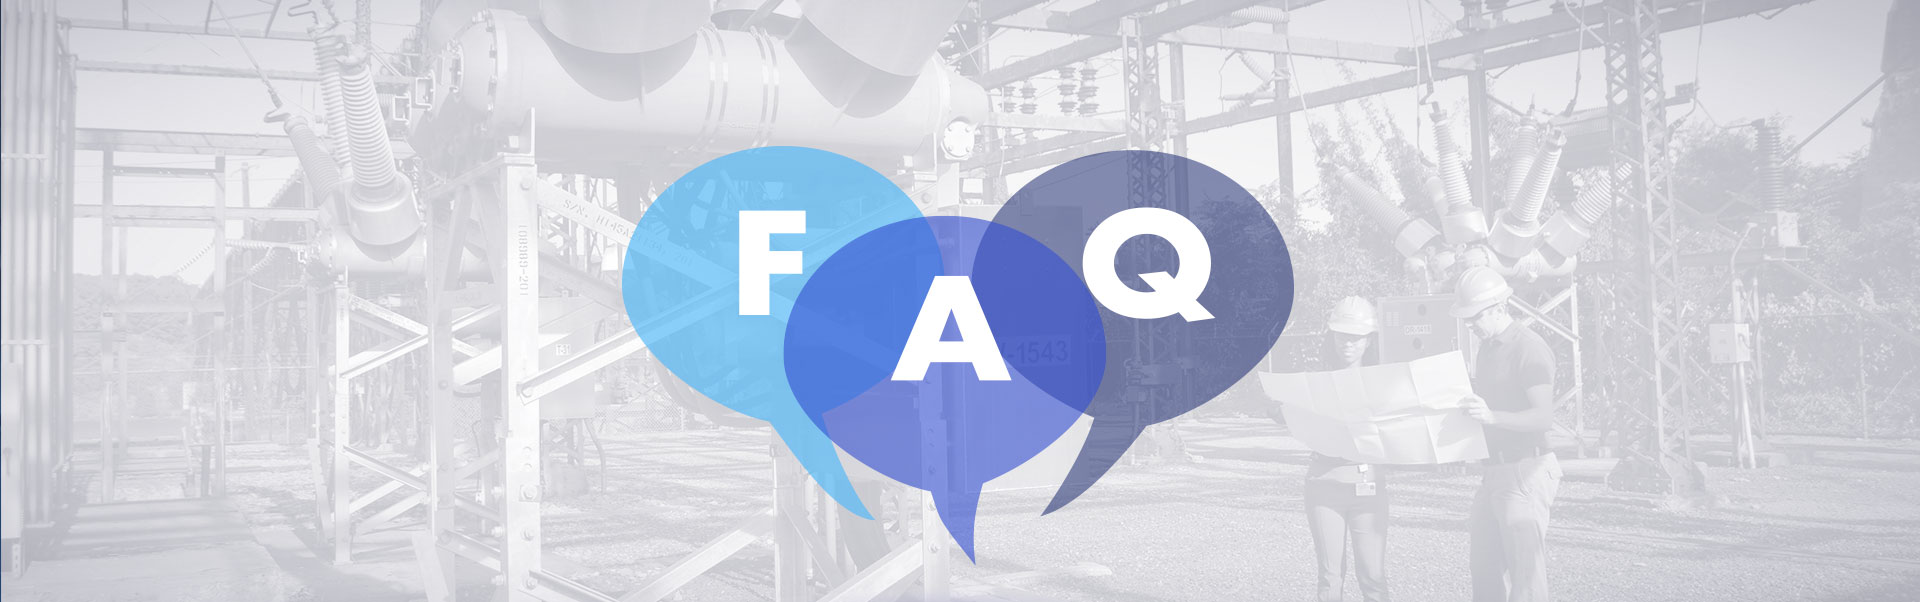 ir-faq-feature-1